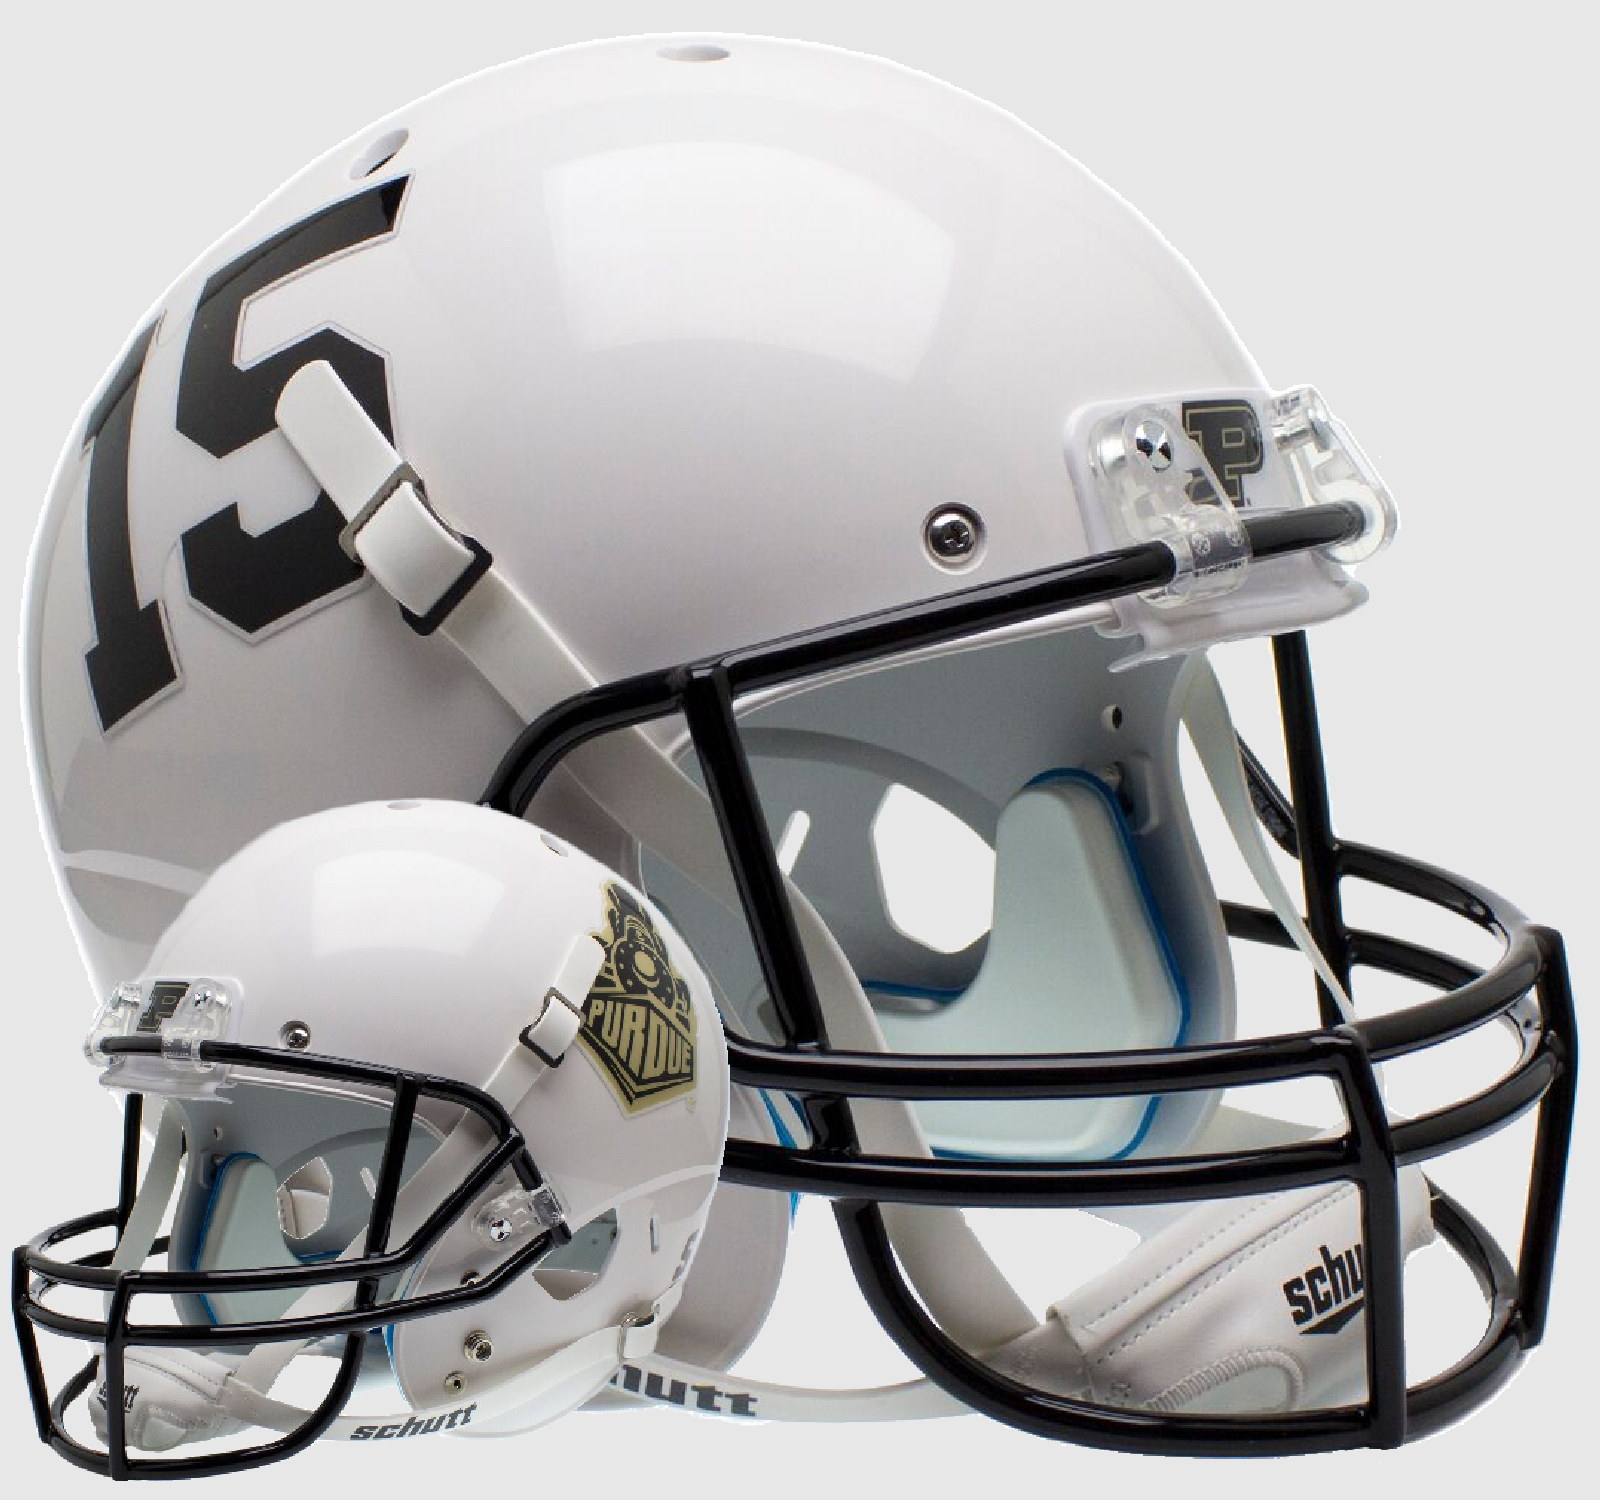 Purdue Boilermakers Full XP Replica Football Helmet Schutt <B>2015 Train</B>